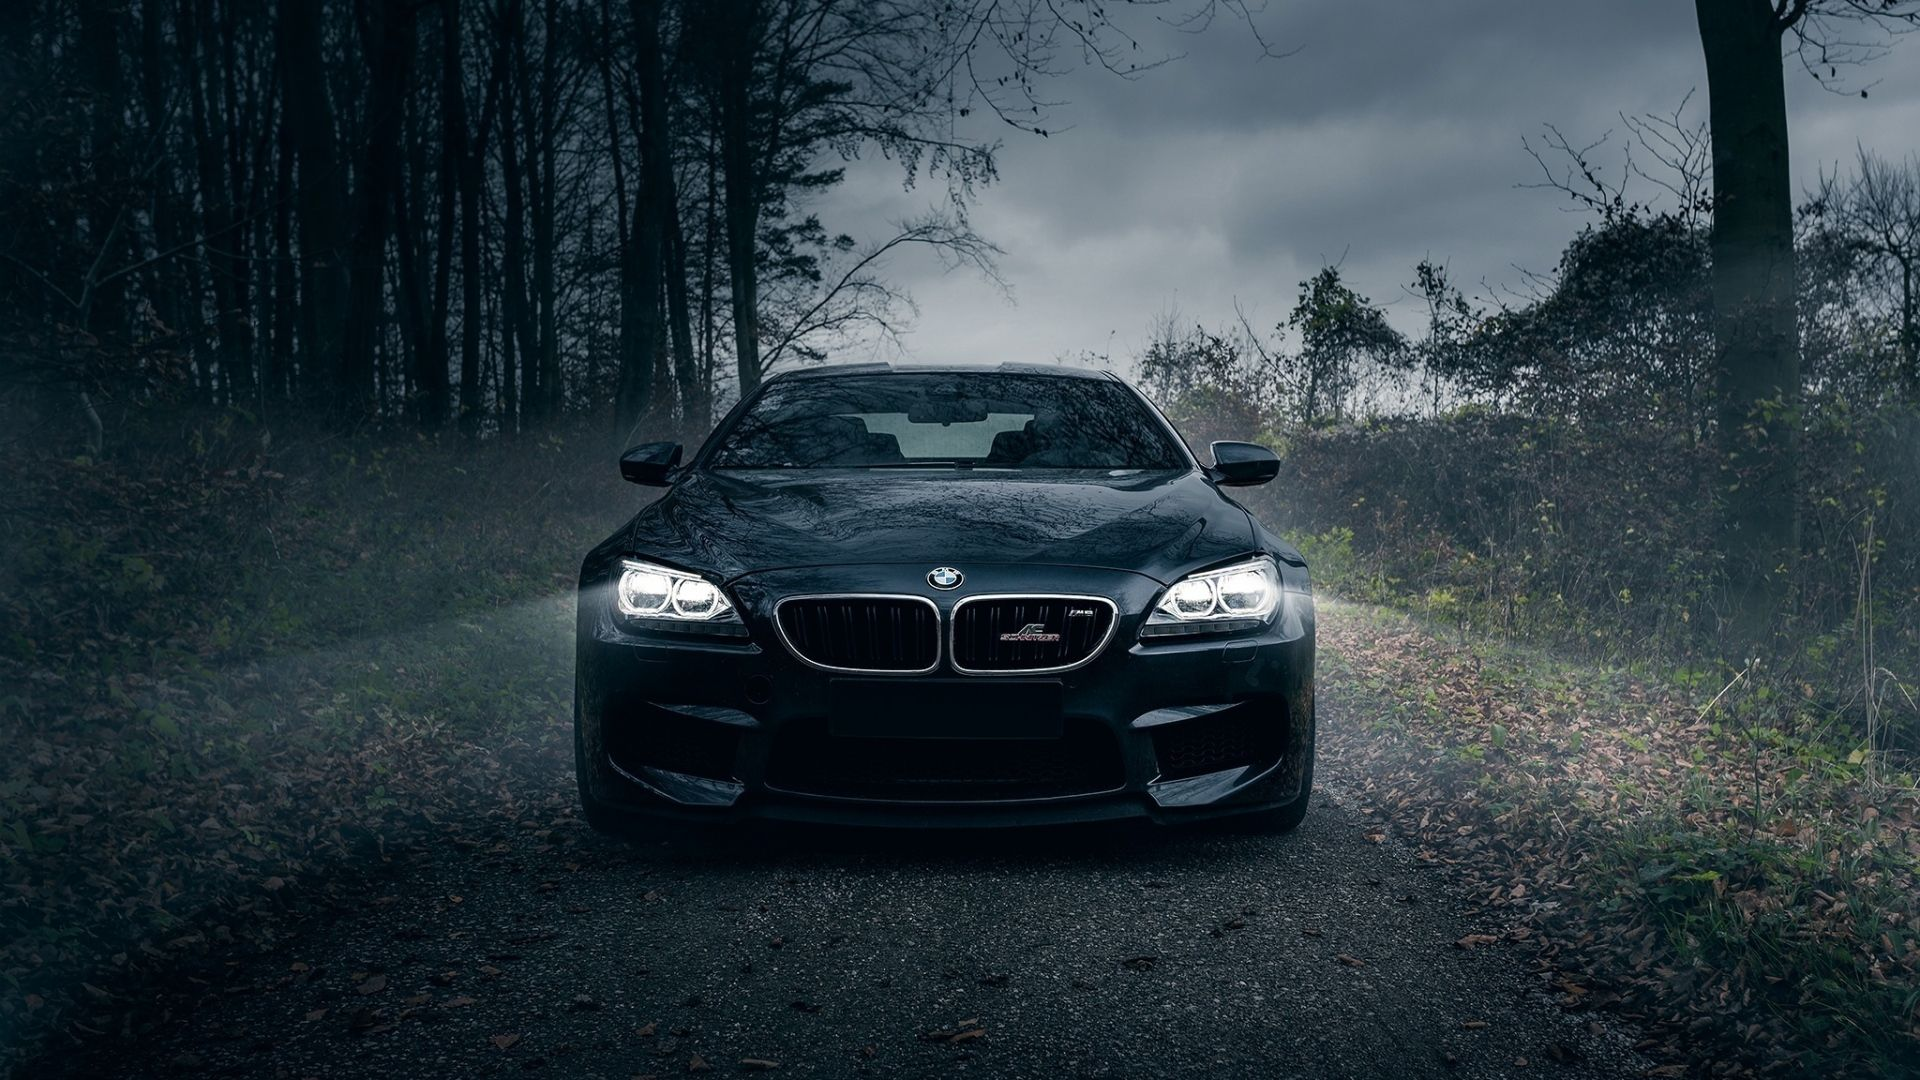 Download Wallpaper 1920x1080 Bmw M6 Dark Knight Black